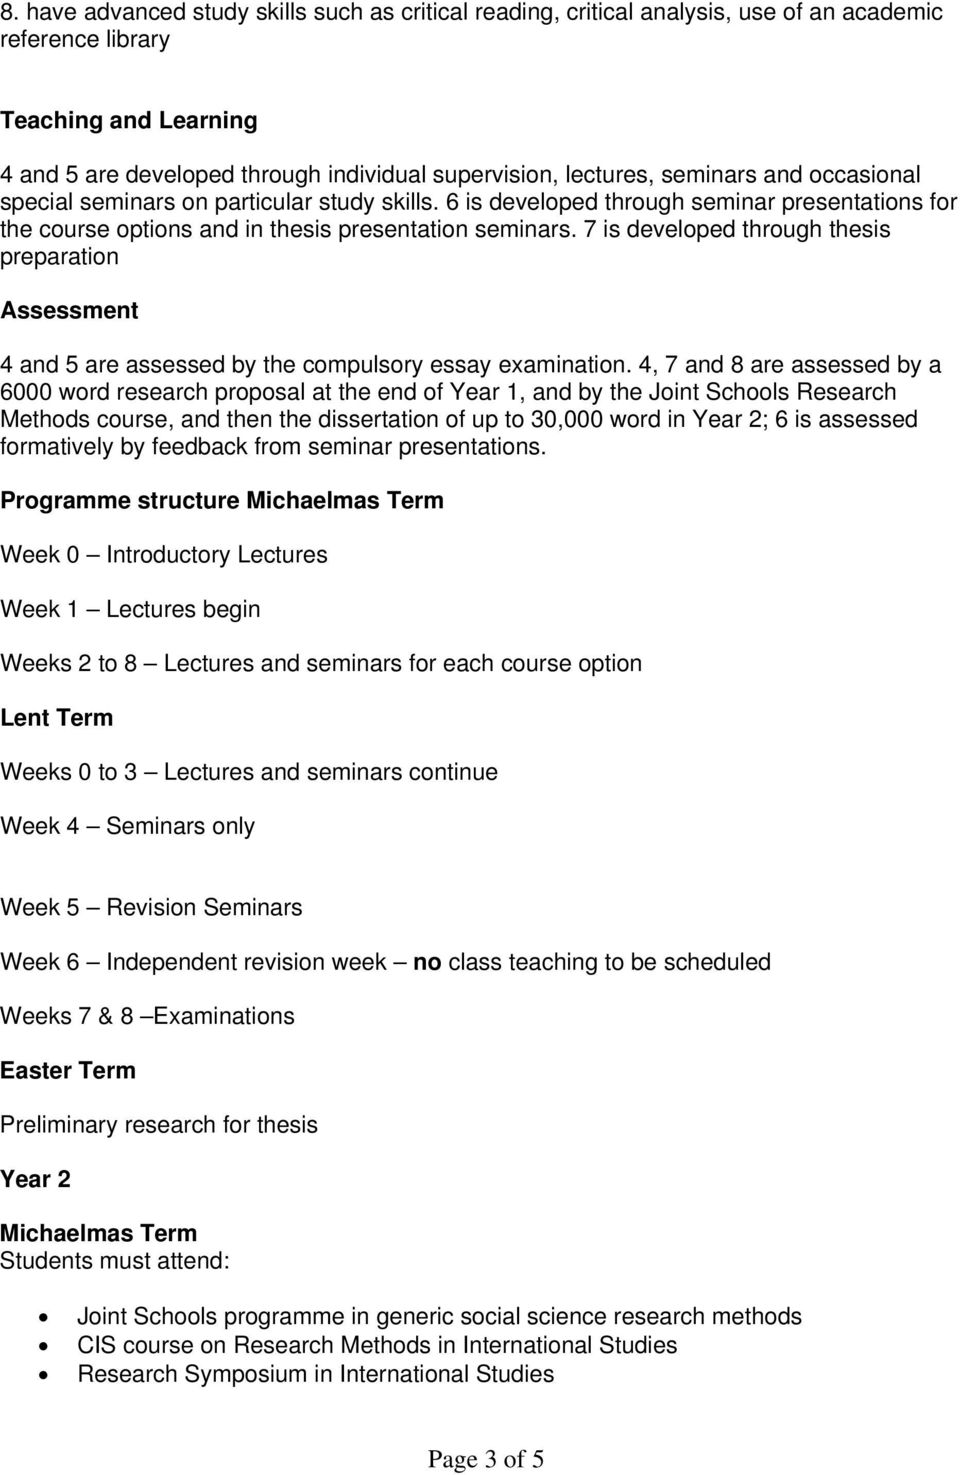 7 is developed through thesis preparation Assessment 4 and 5 are assessed by the compulsory essay examination.